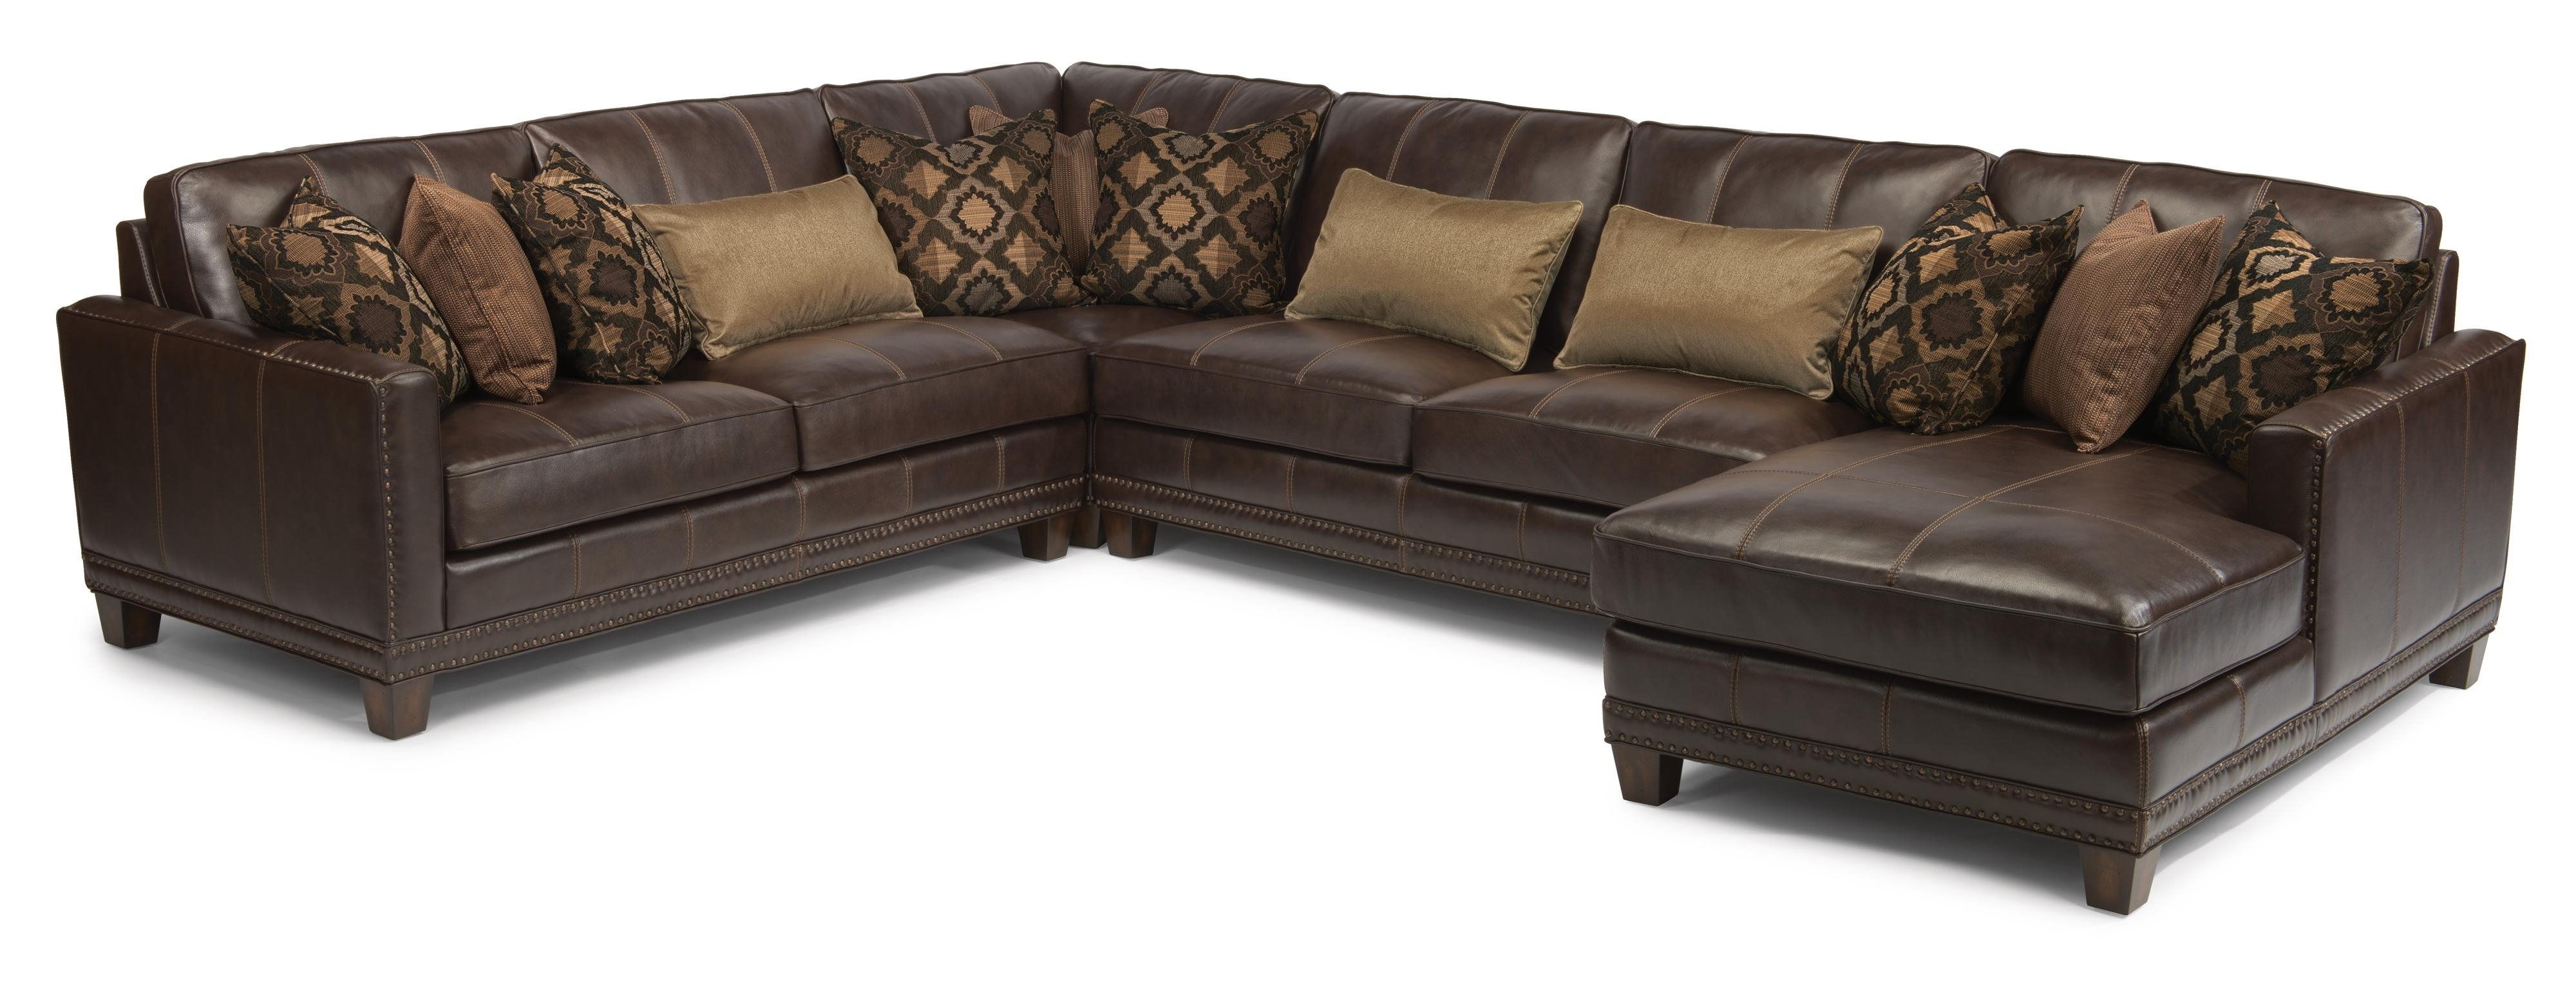 Flexsteel Latitudes – Port Royal Transitional Four Piece Sectional In Gordon 3 Piece Sectionals With Raf Chaise (Image 5 of 25)